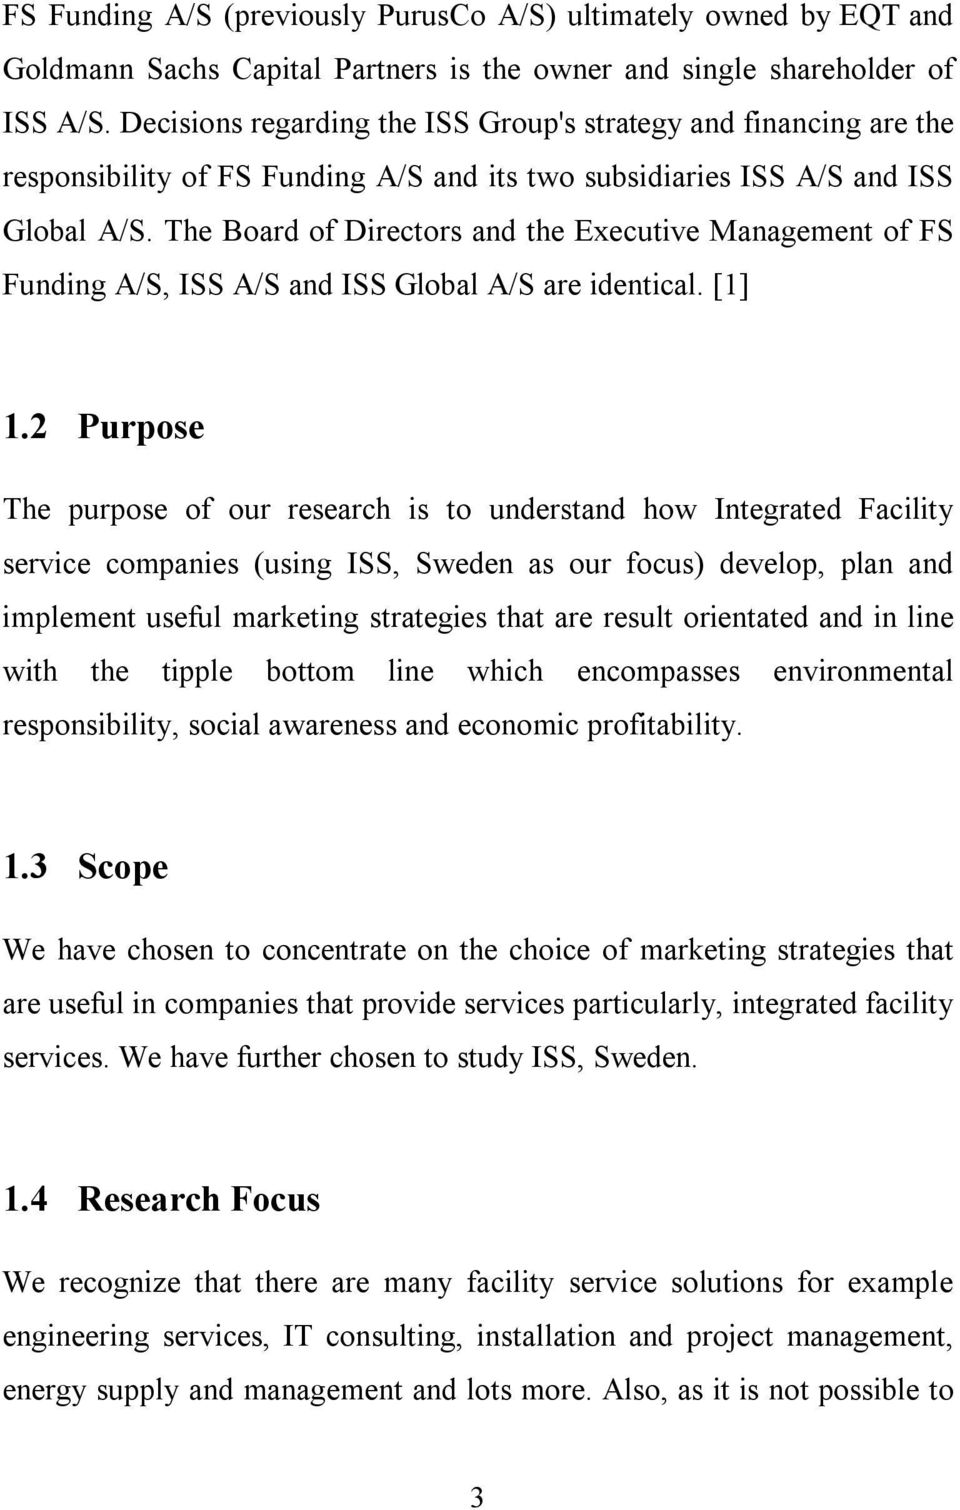 The Board of Directors and the Executive Management of FS Funding A/S, ISS A/S and ISS Global A/S are identical. [1] 1.